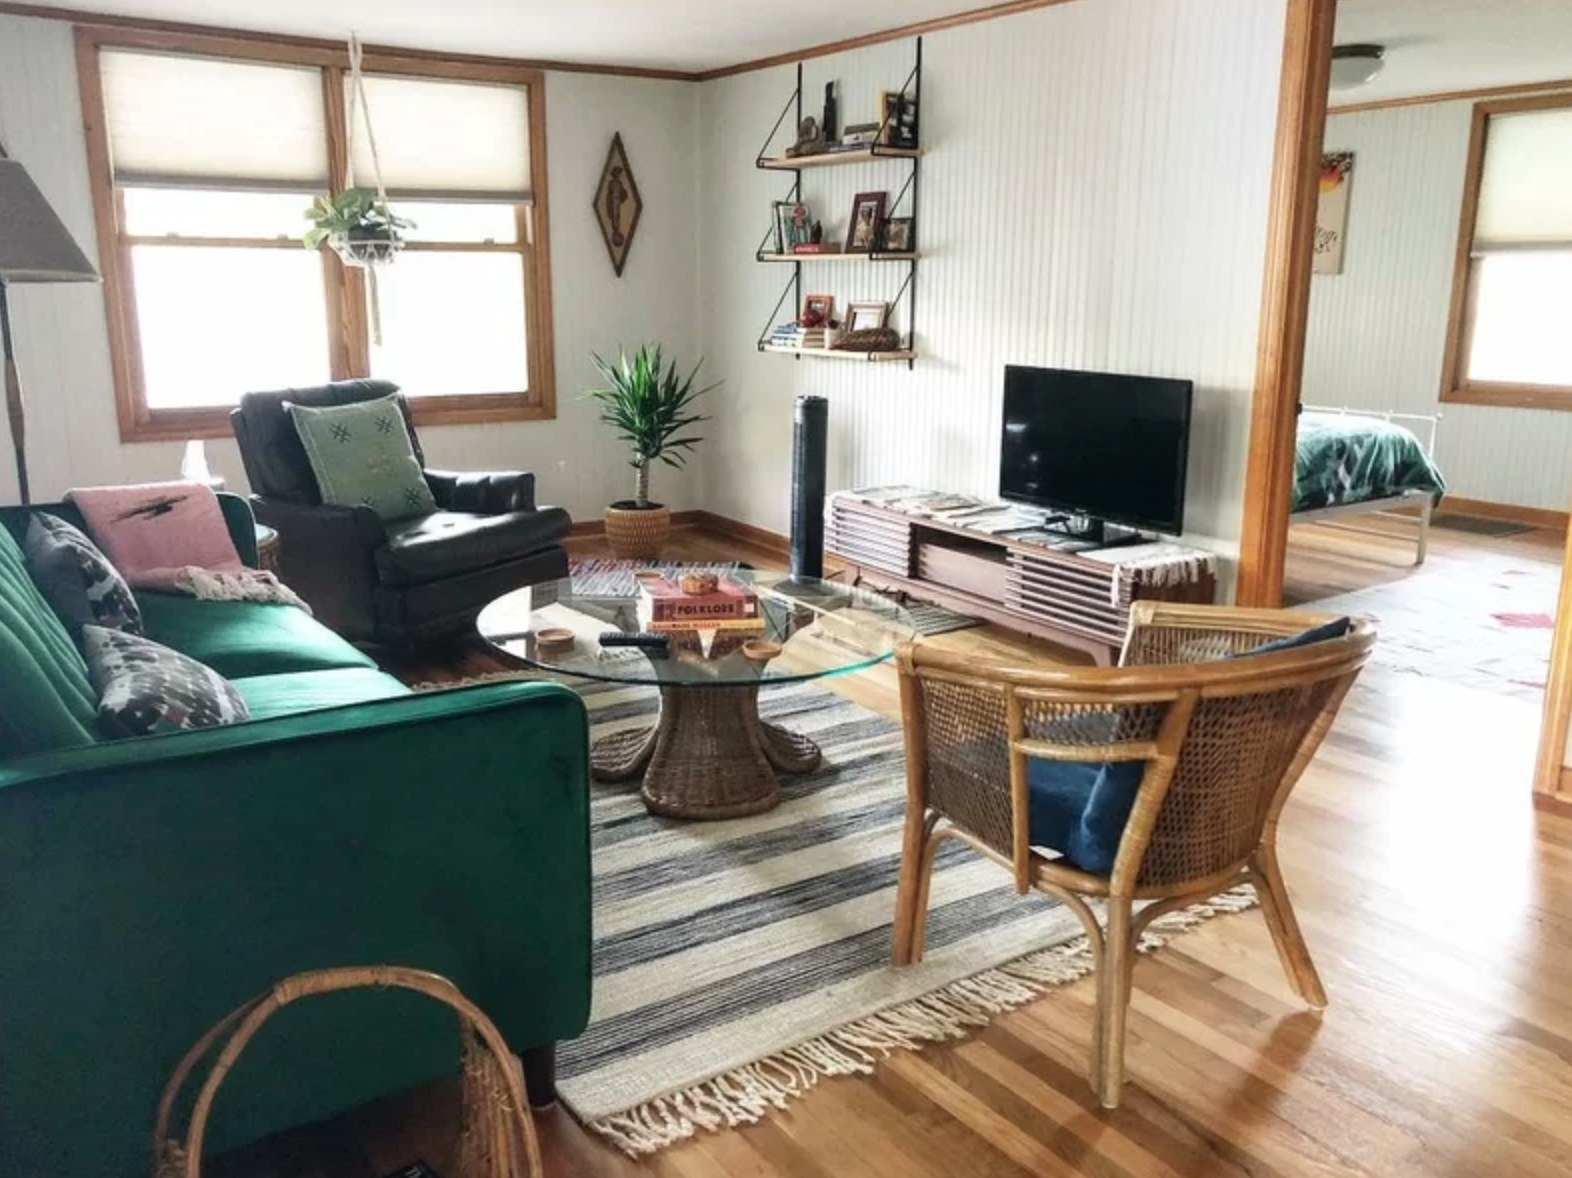 The TV stand holding a flat screen in a boho living room